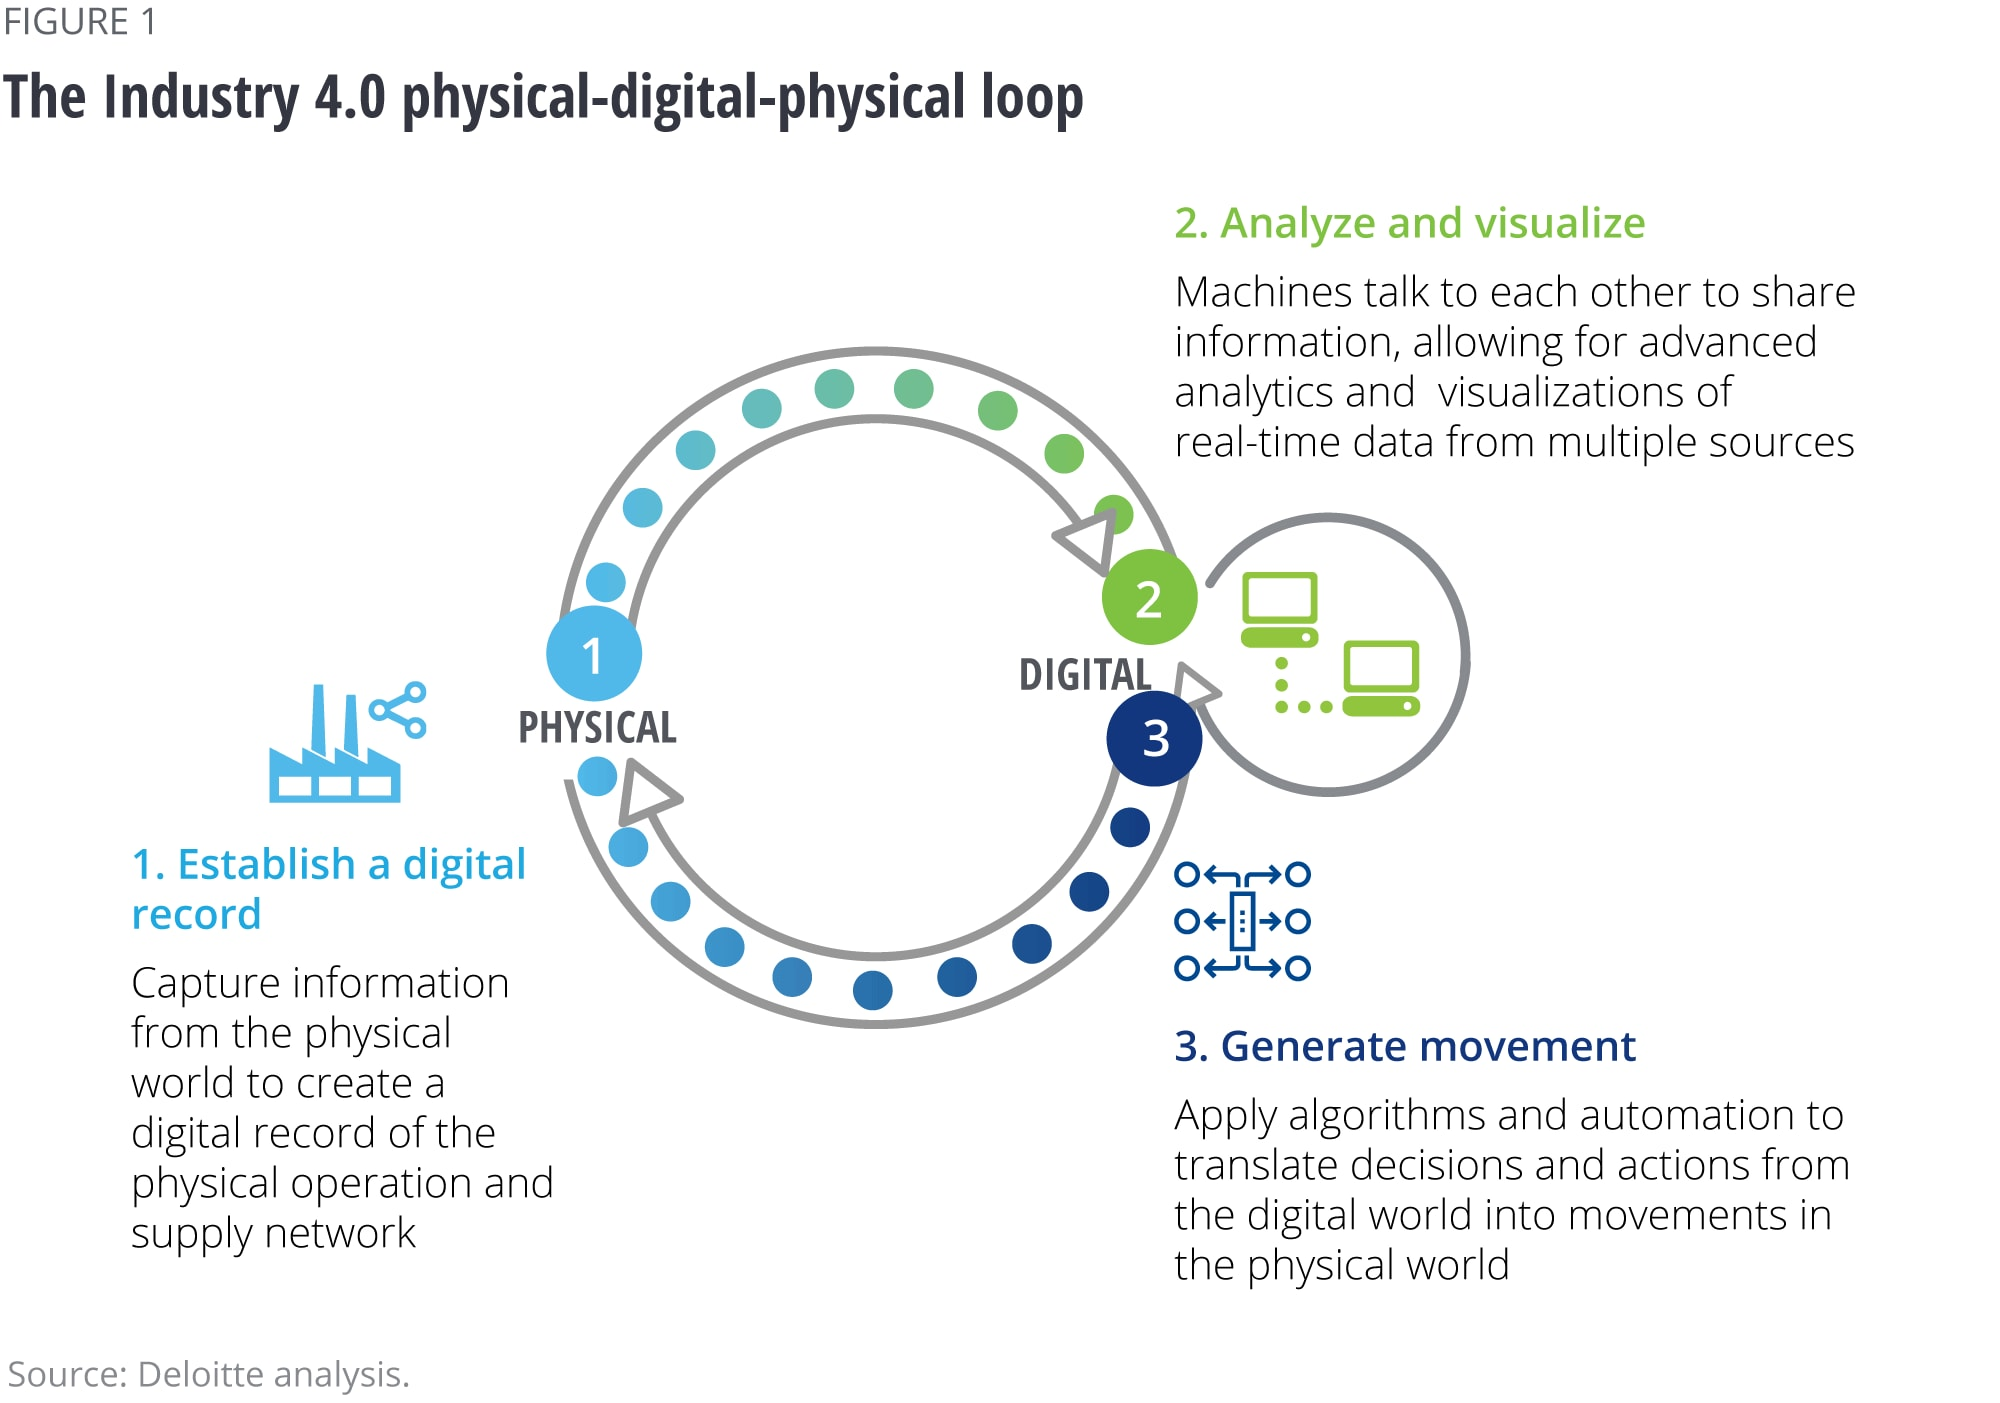 The Industry 4.0 physical-digital-physical loop